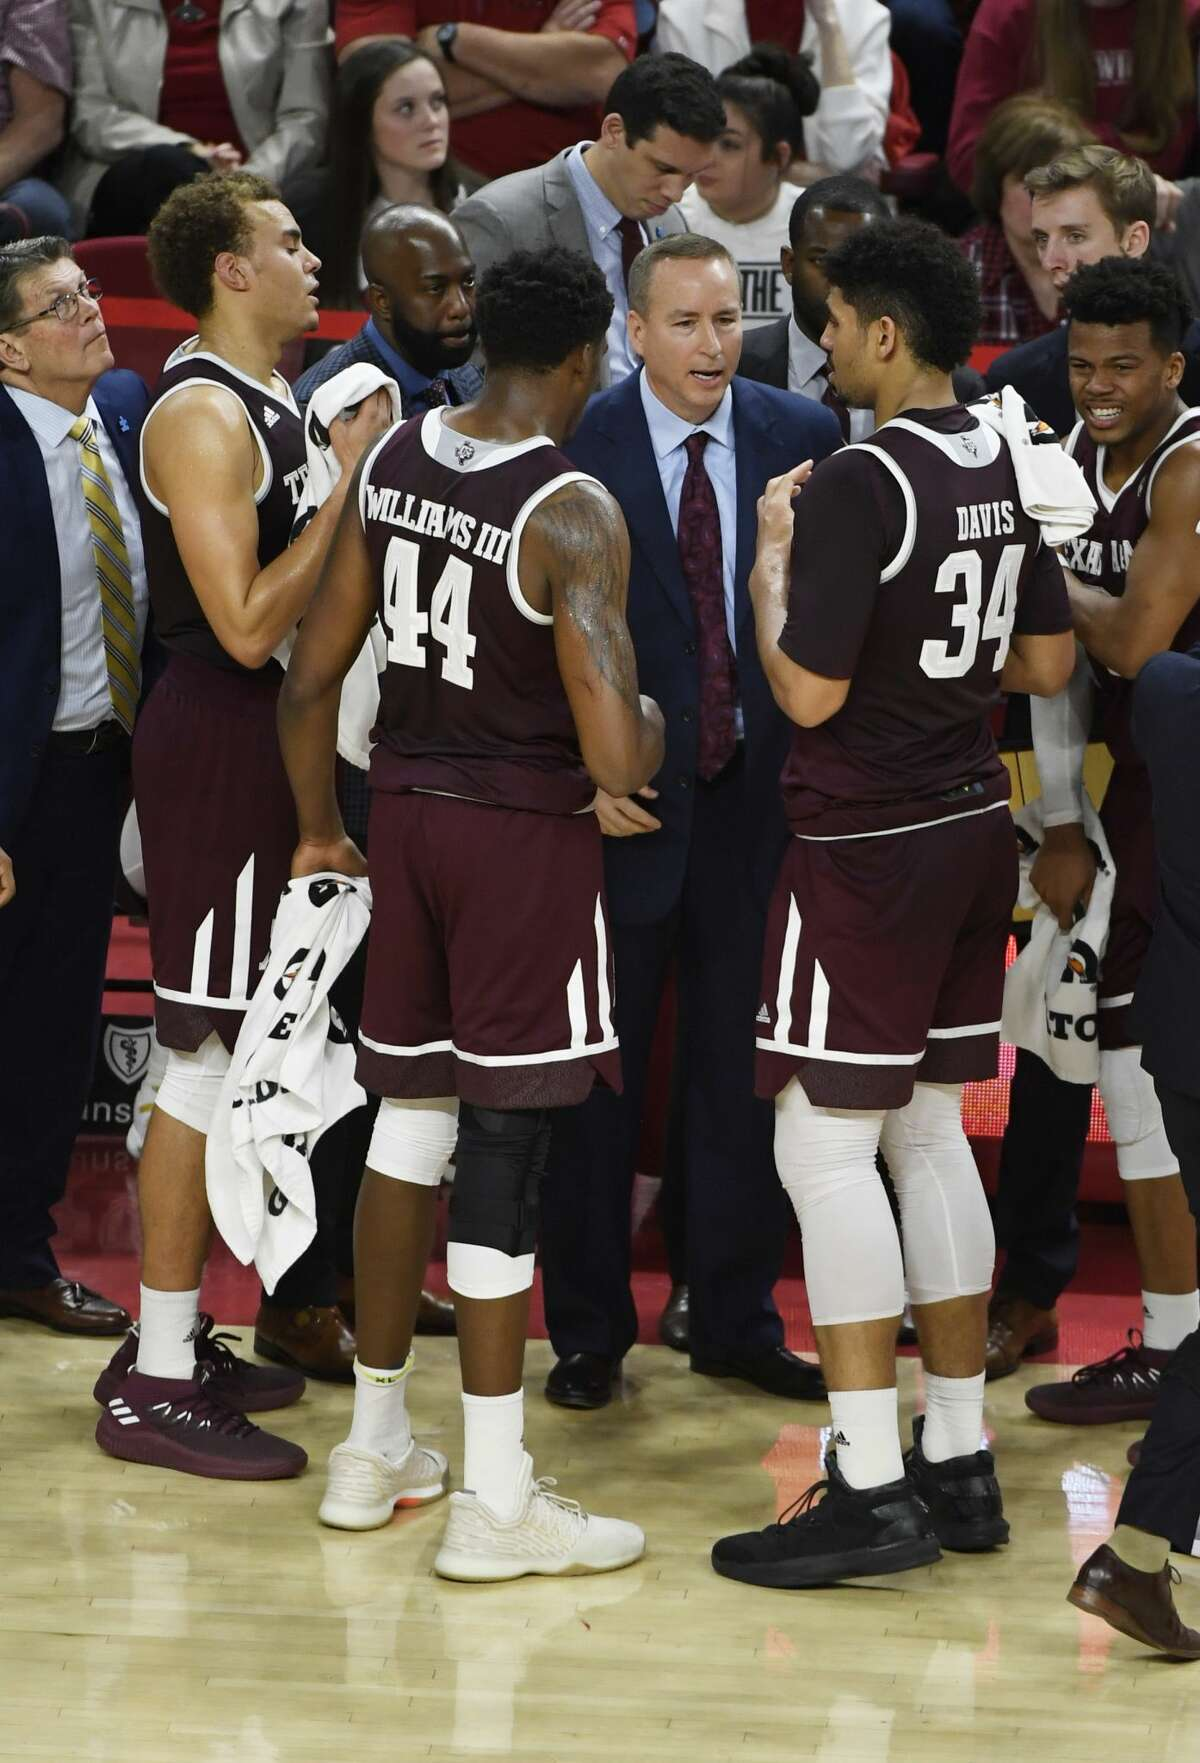 Best matchup Texas A&M vs. Providence The Aggies are tough to figure. They have beaten West Virginia and Kentucky then let Alabama's Collin Sexton drive the length of the court to beat them in the SEC tournament. Providence had big wins down the stretch to earn an at-large spot.